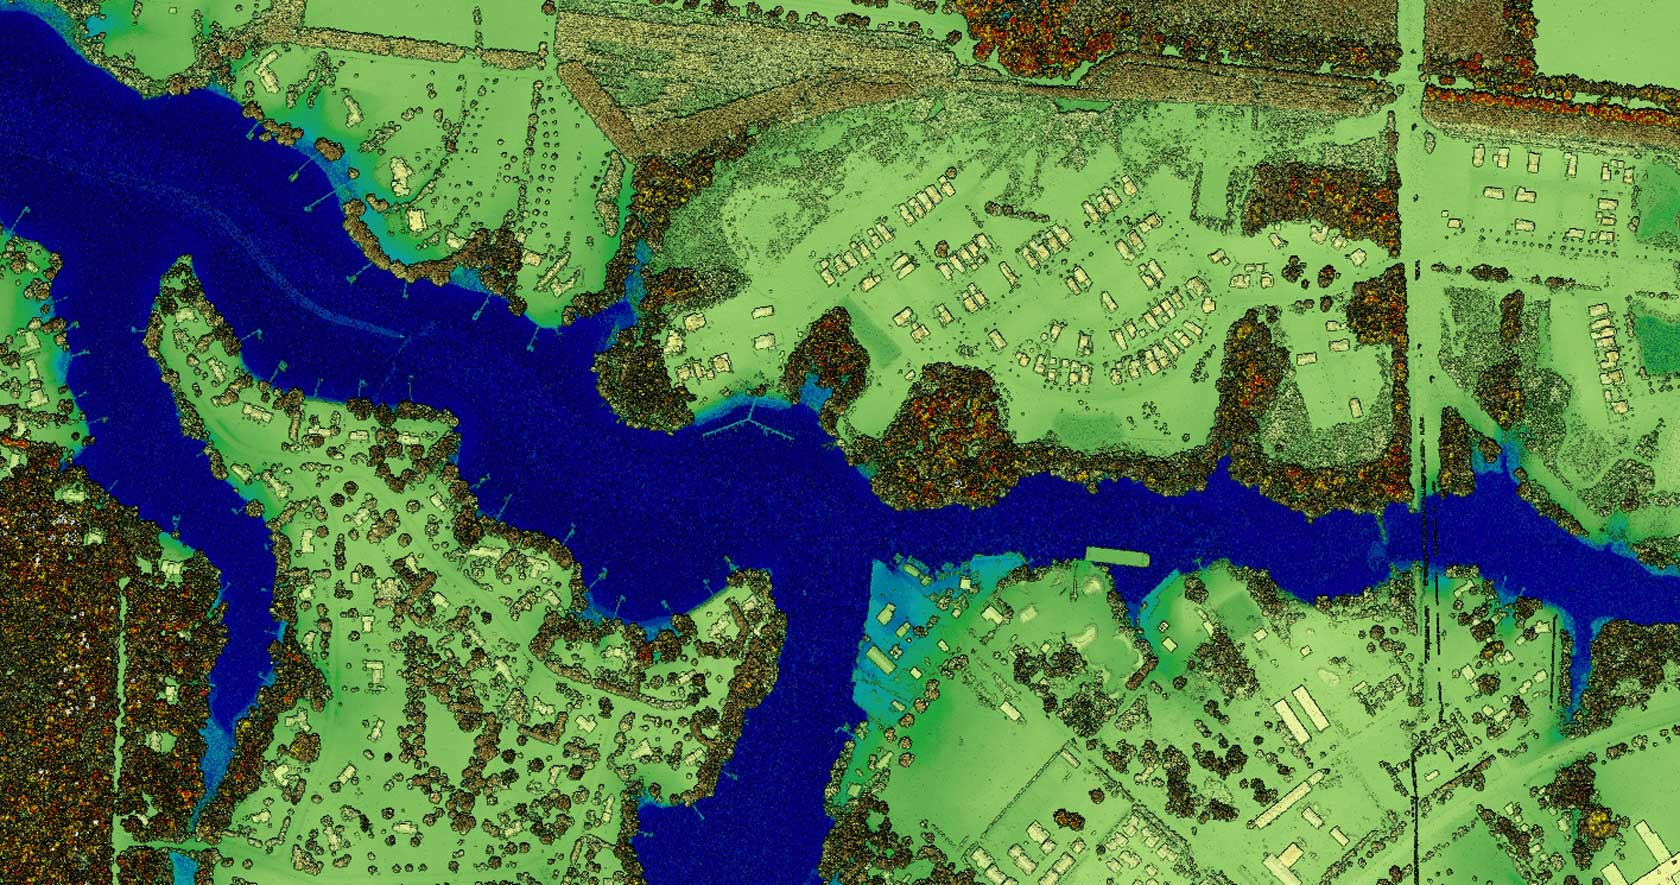 Large Area LiDAR Mapping Innovation